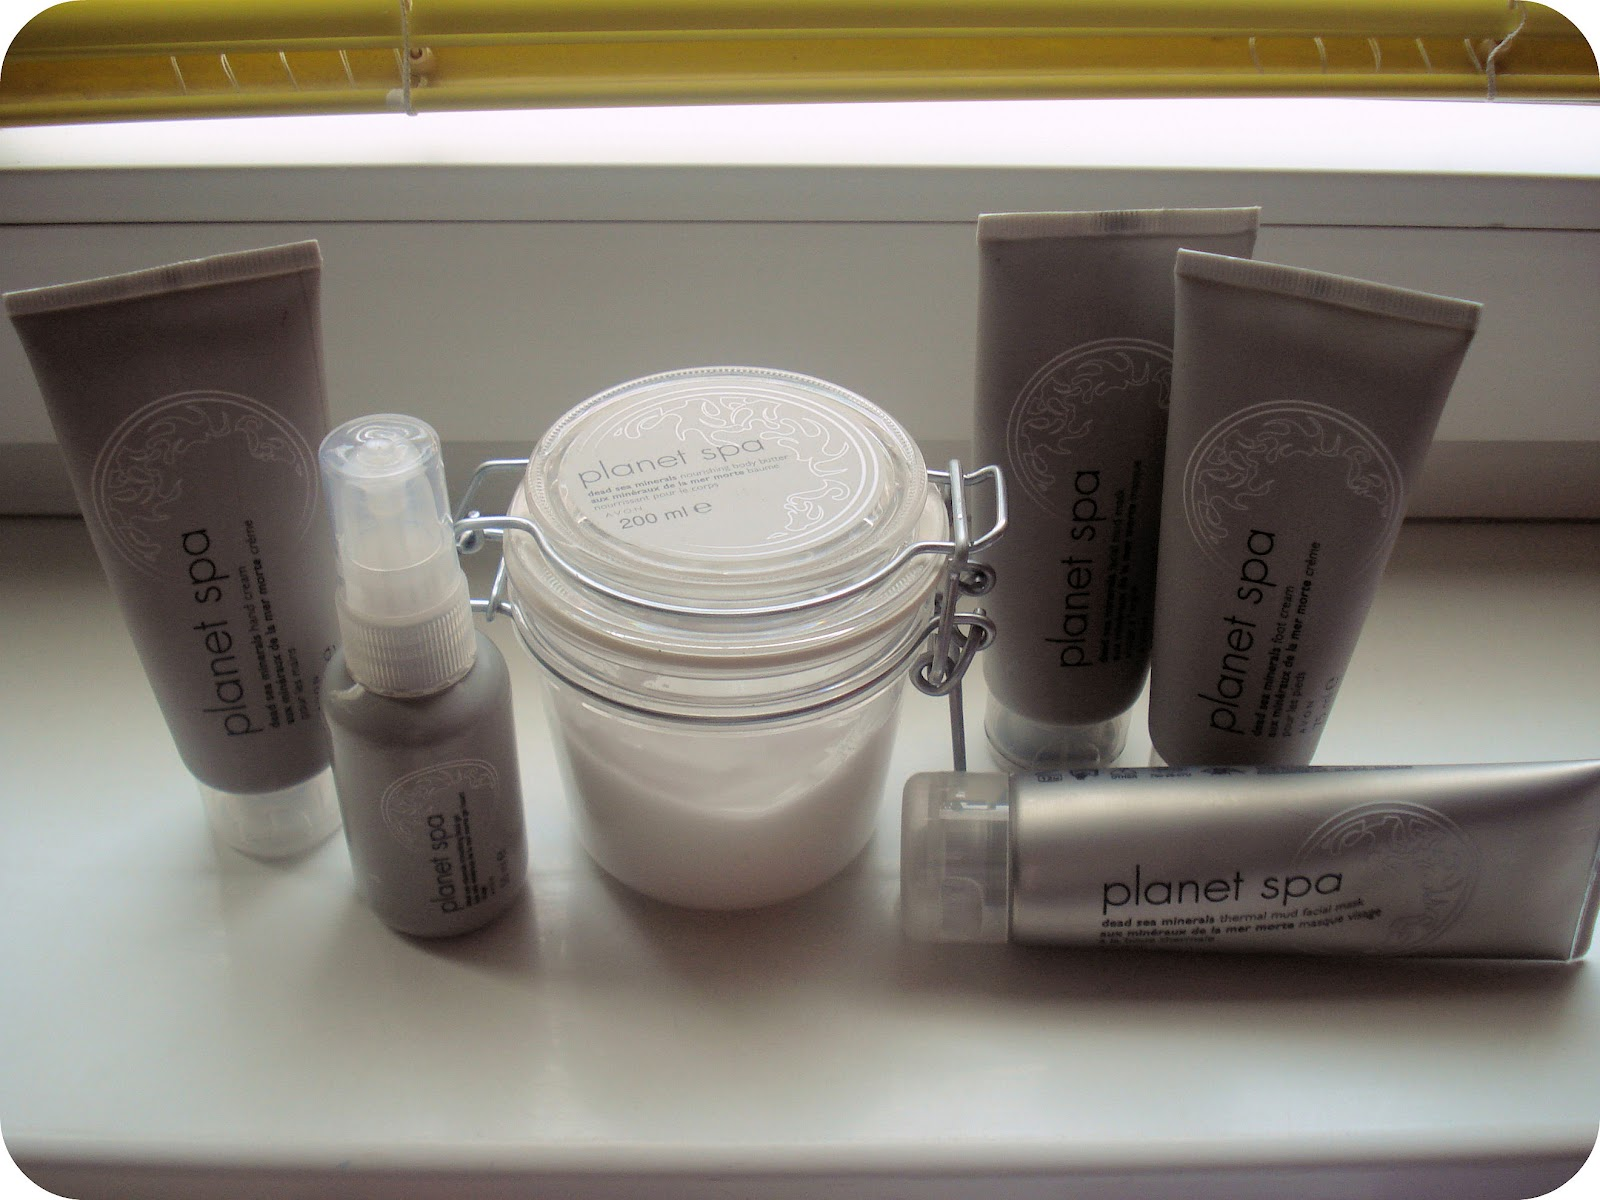 What I Love Avon Planet Spa Review